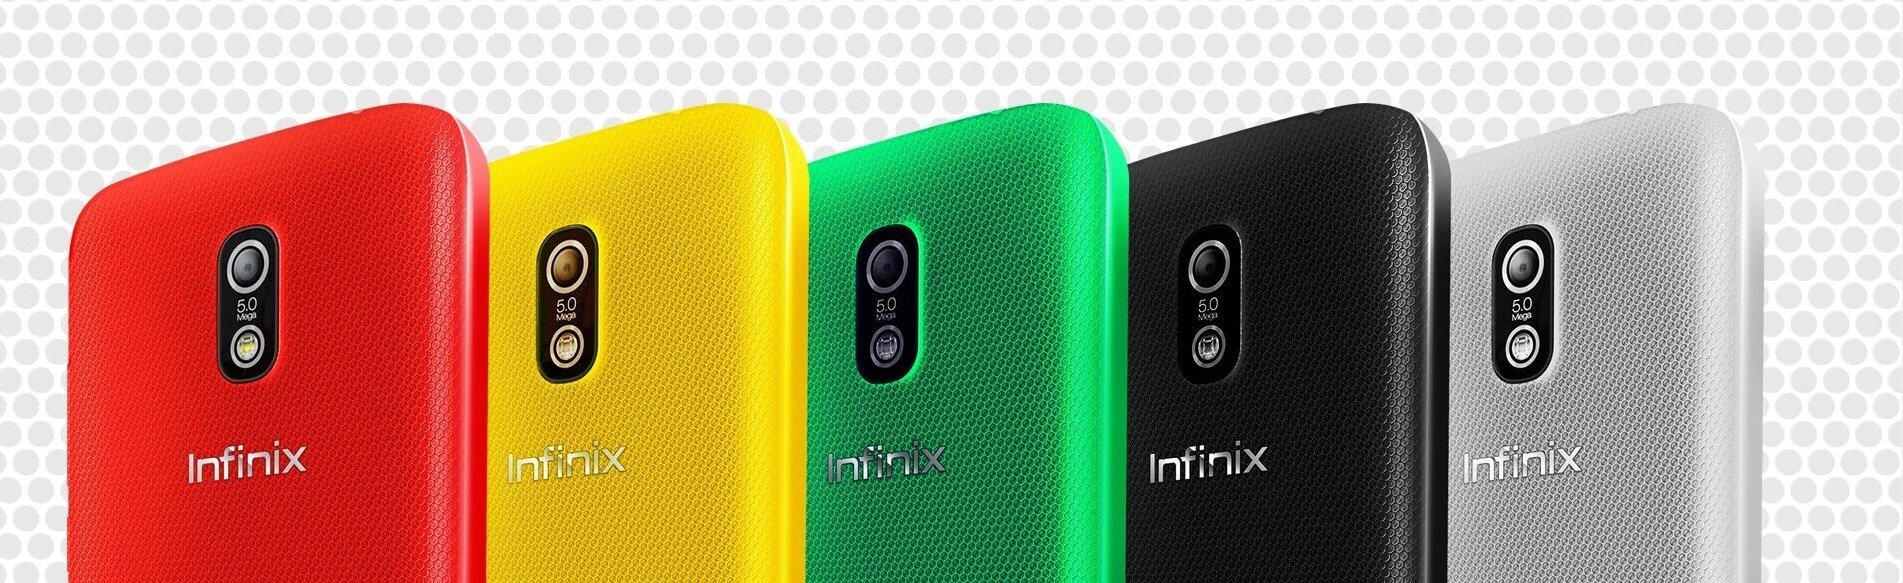 How to Root Infinix Smartphone